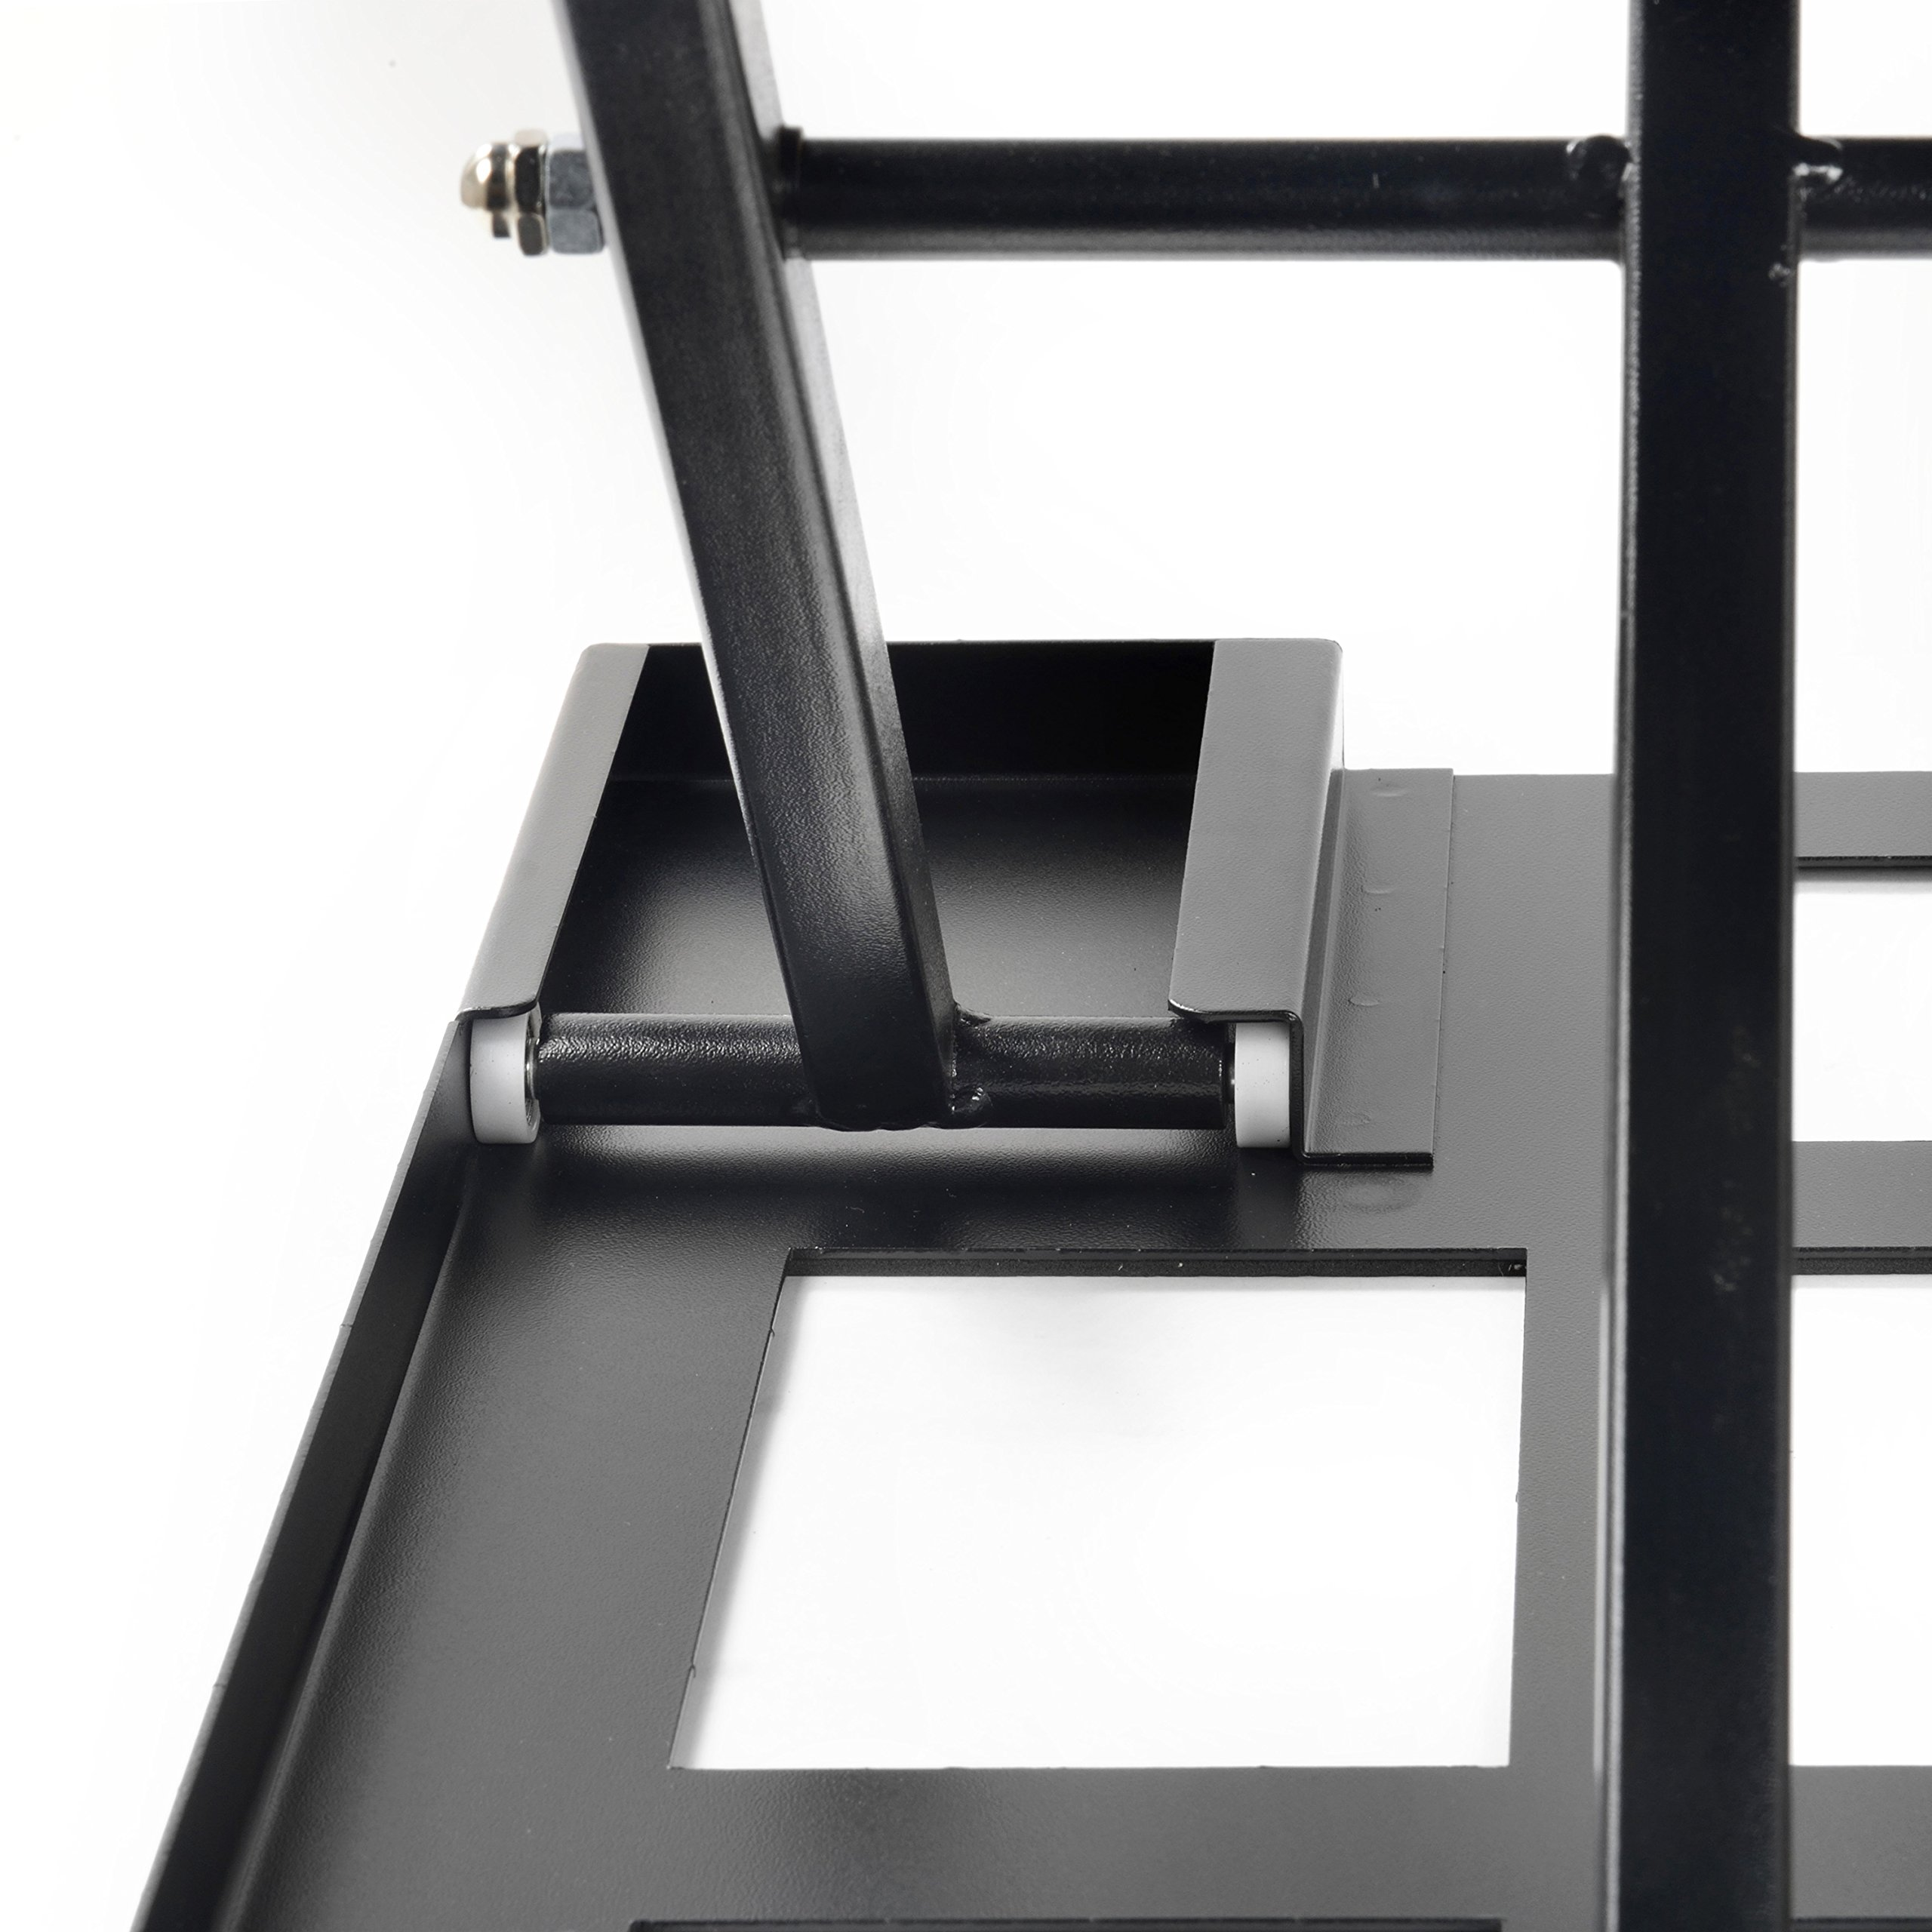 Best Standing Desk, Adjustable Height Riser Converter, Stand Up or Sit Down, 32'' Black Office Desktop, Computer Monitor & Laptop Workspace, Unlimited Ergonomic Positions for Better Health, Casiii UP32 by Casiii (Image #7)